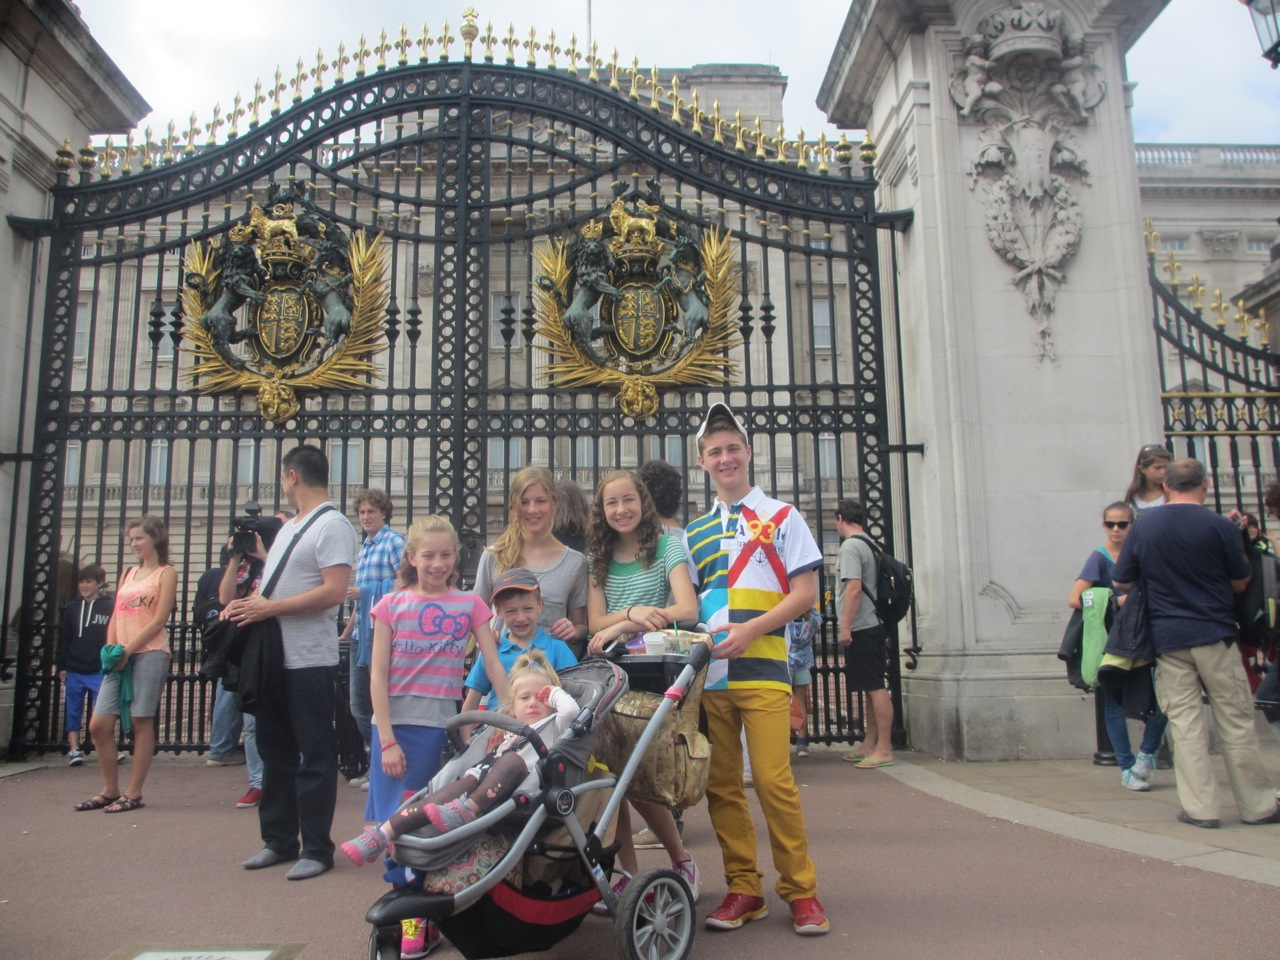 royal palace london share your itinerary realfamilytrips.com